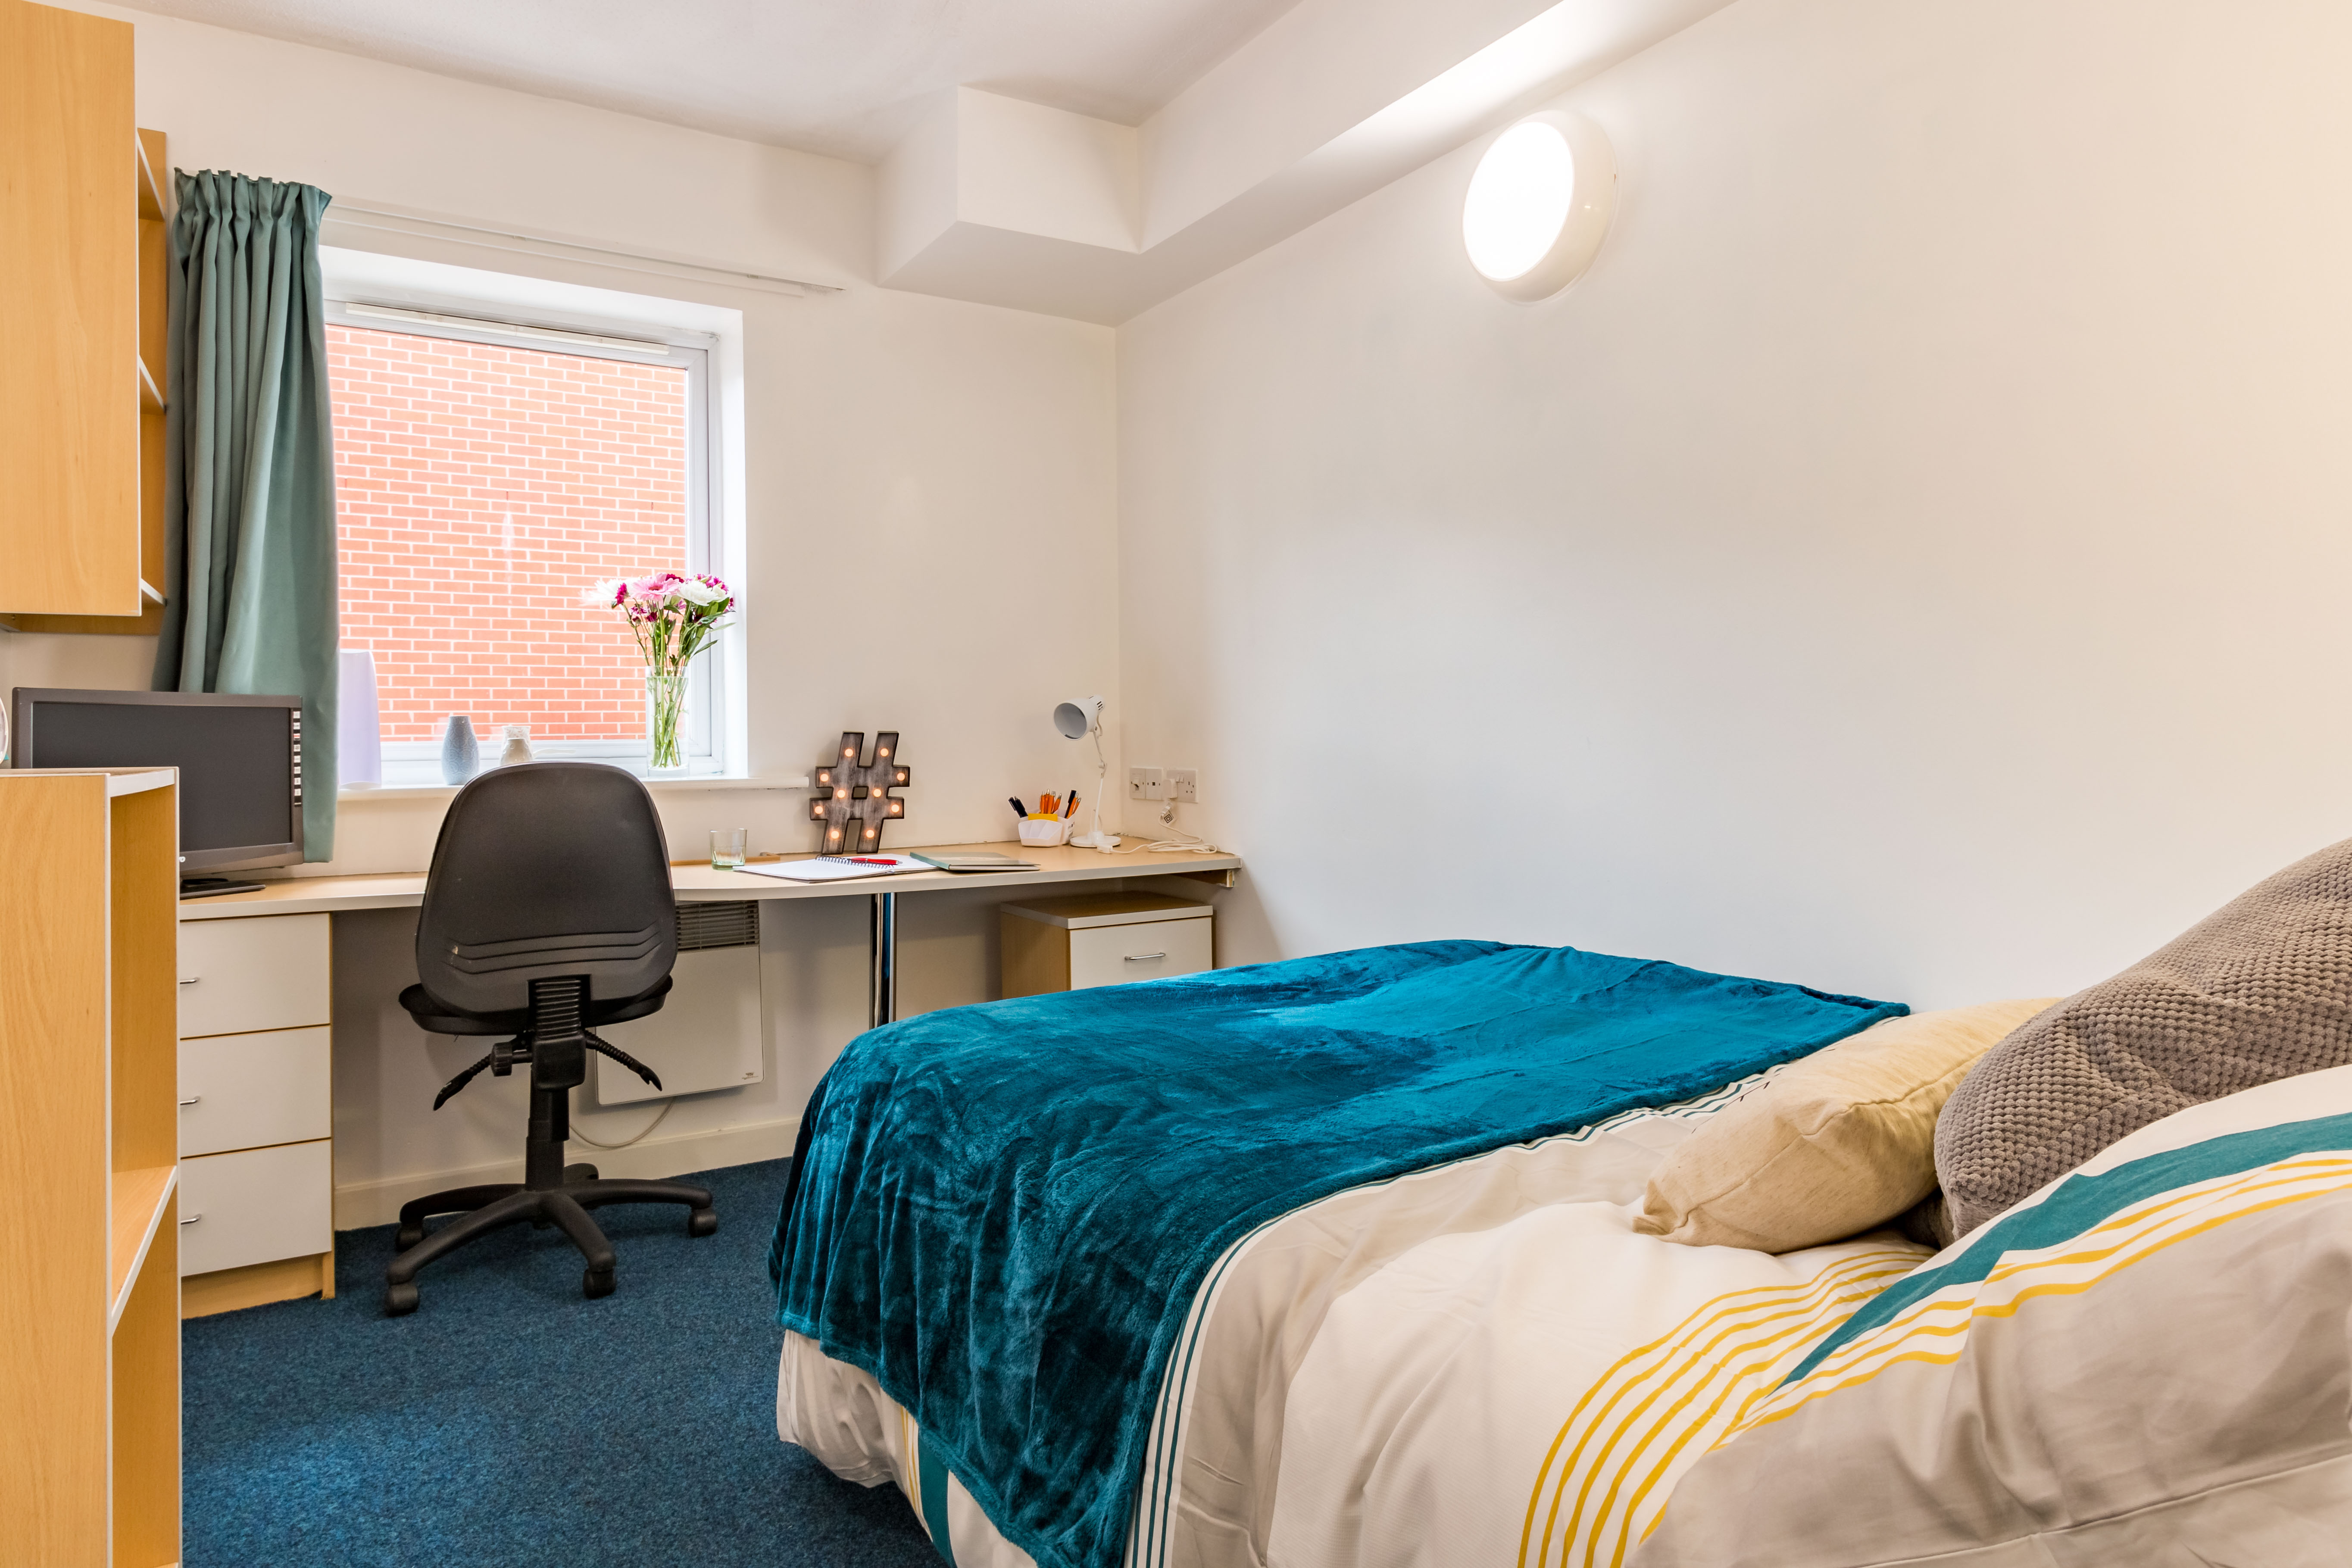 En-suite room at Leighton Hall student accommodation in Preston